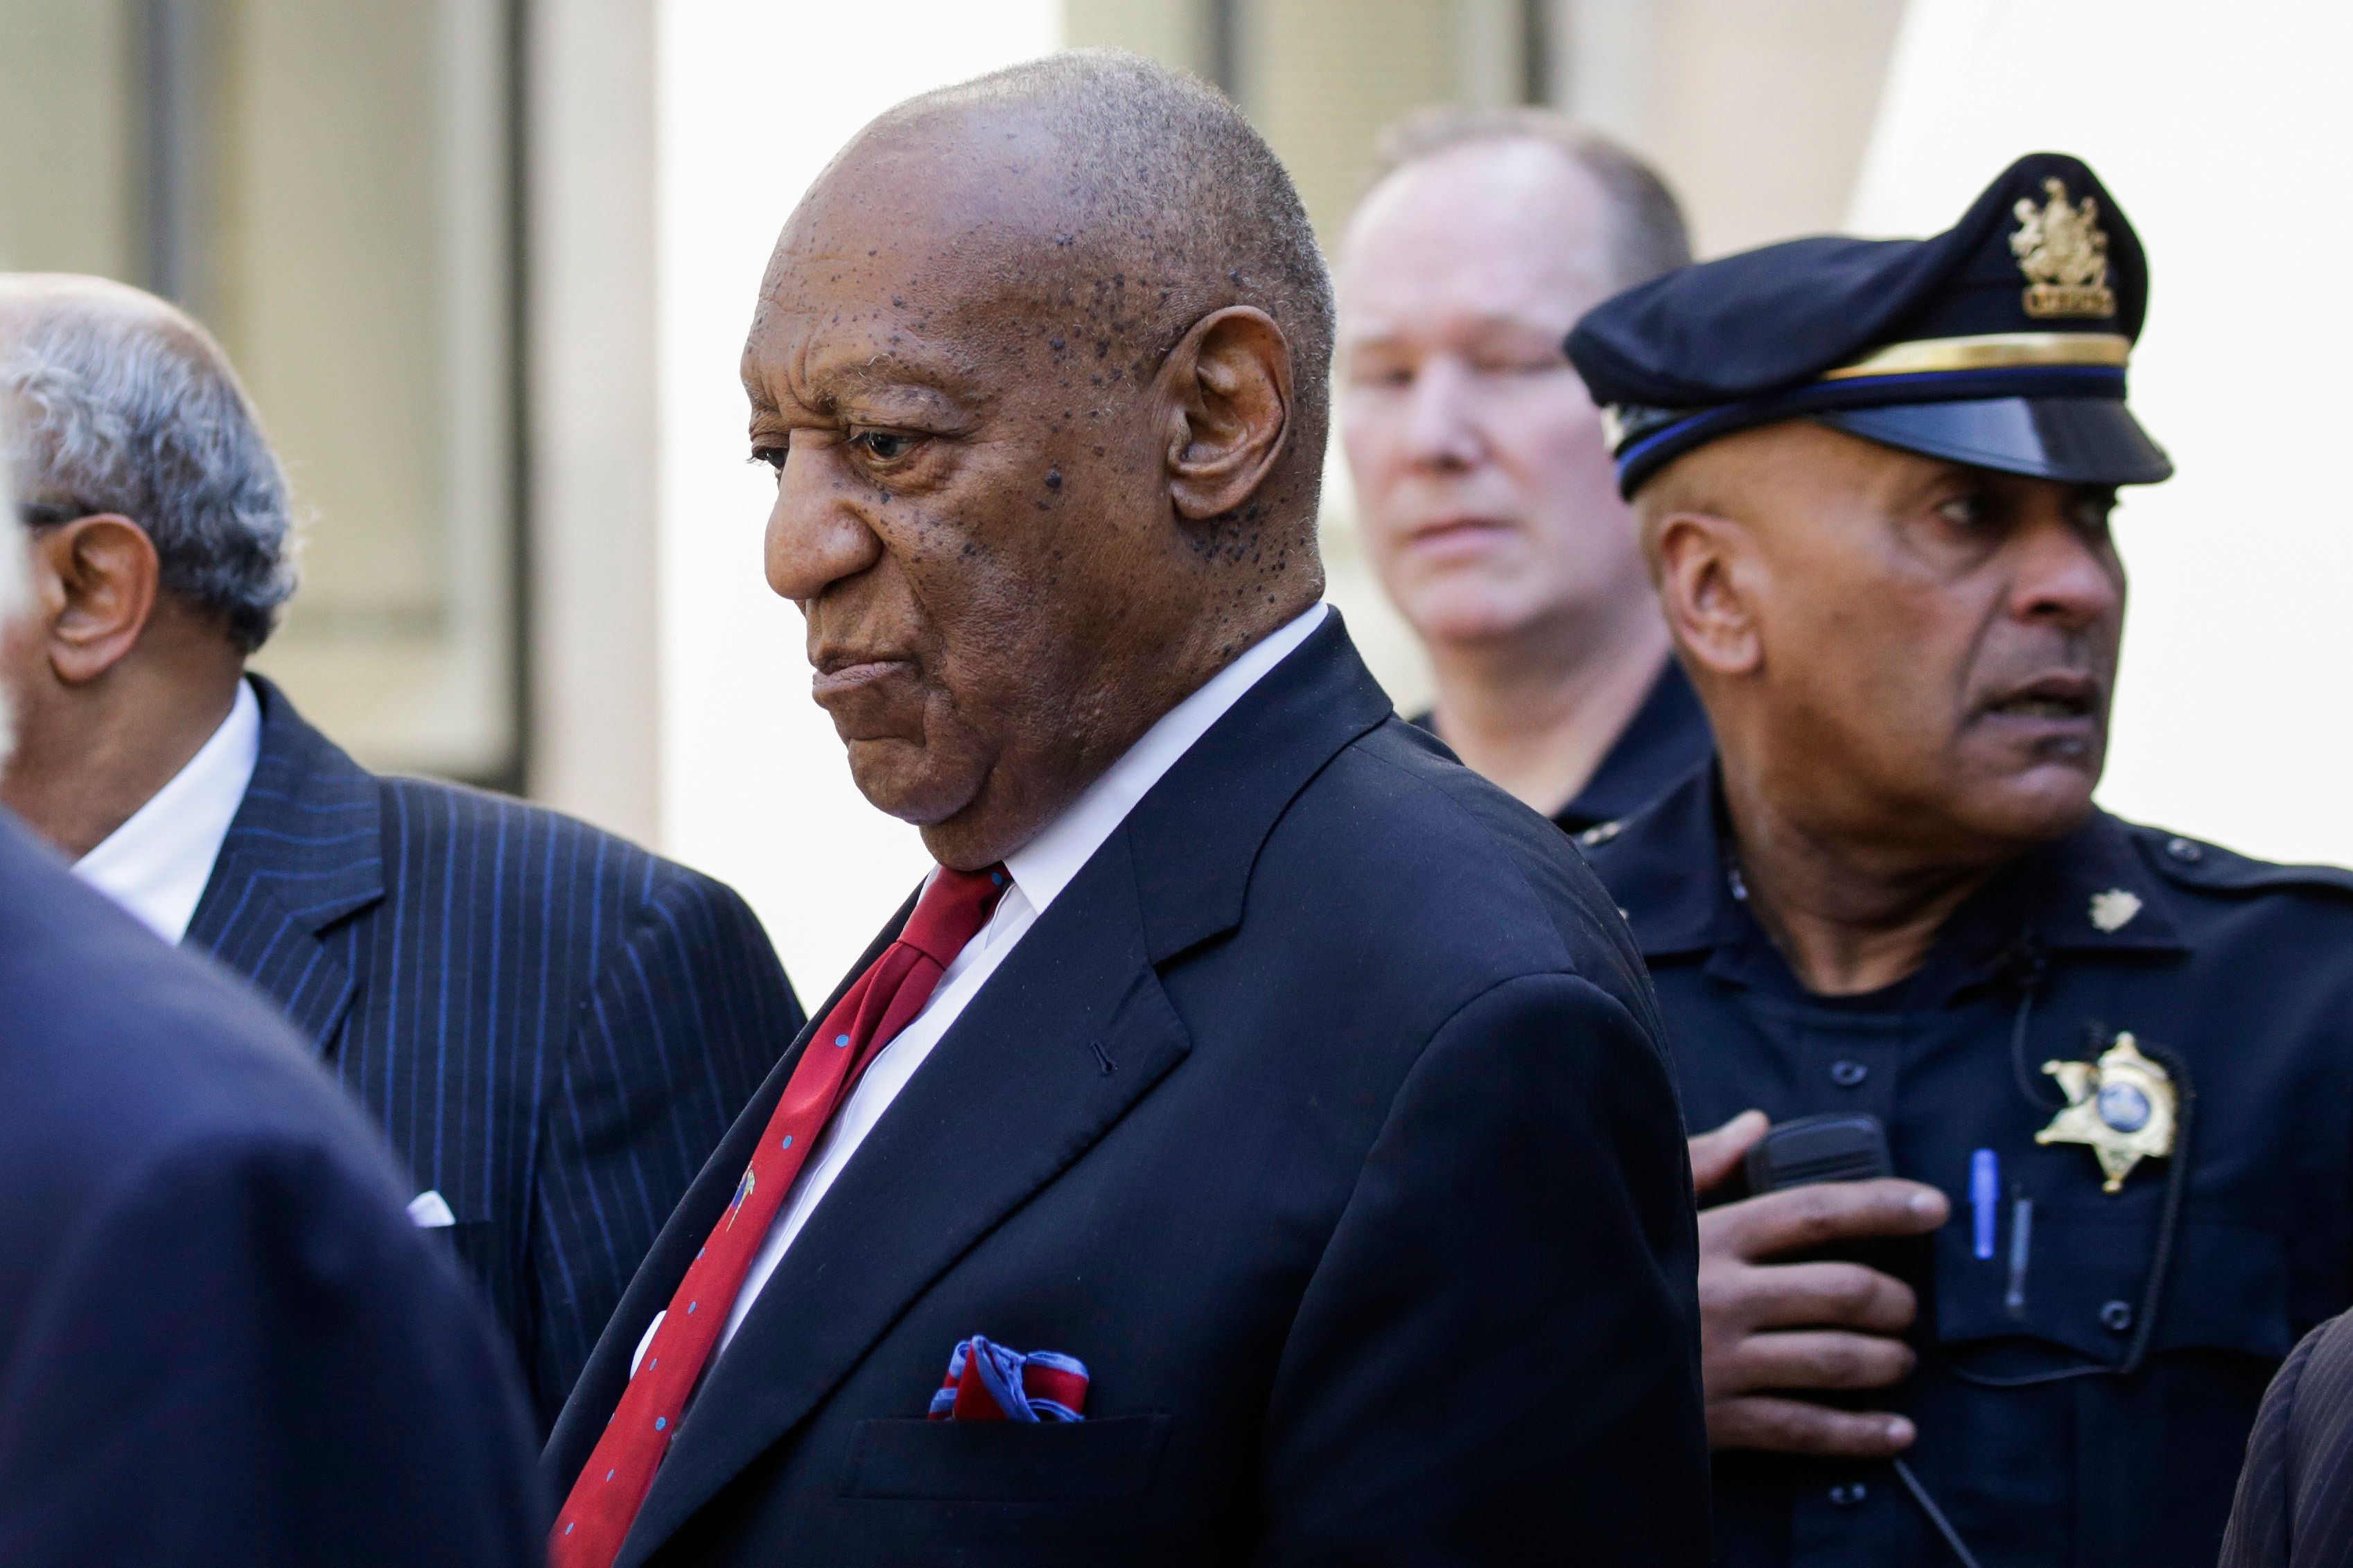 Actor and comedian Bill Cosby comes out of the Courthouse after the verdict in the retrial of his sexual assault case at the Montgomery County Courthouse in Norristown, Pennsylvania on April 26, 2018. - Disgraced television icon Bill Cosby was convicted Thursday of sexual assault by a US jury -- losing a years-long legal battle that was made tougher at retrial as the first celebrity trial of the #MeToo era. (Photo by DOMINICK REUTER / AFP)        (Photo credit should read DOMINICK REUTER/AFP/Getty Images)